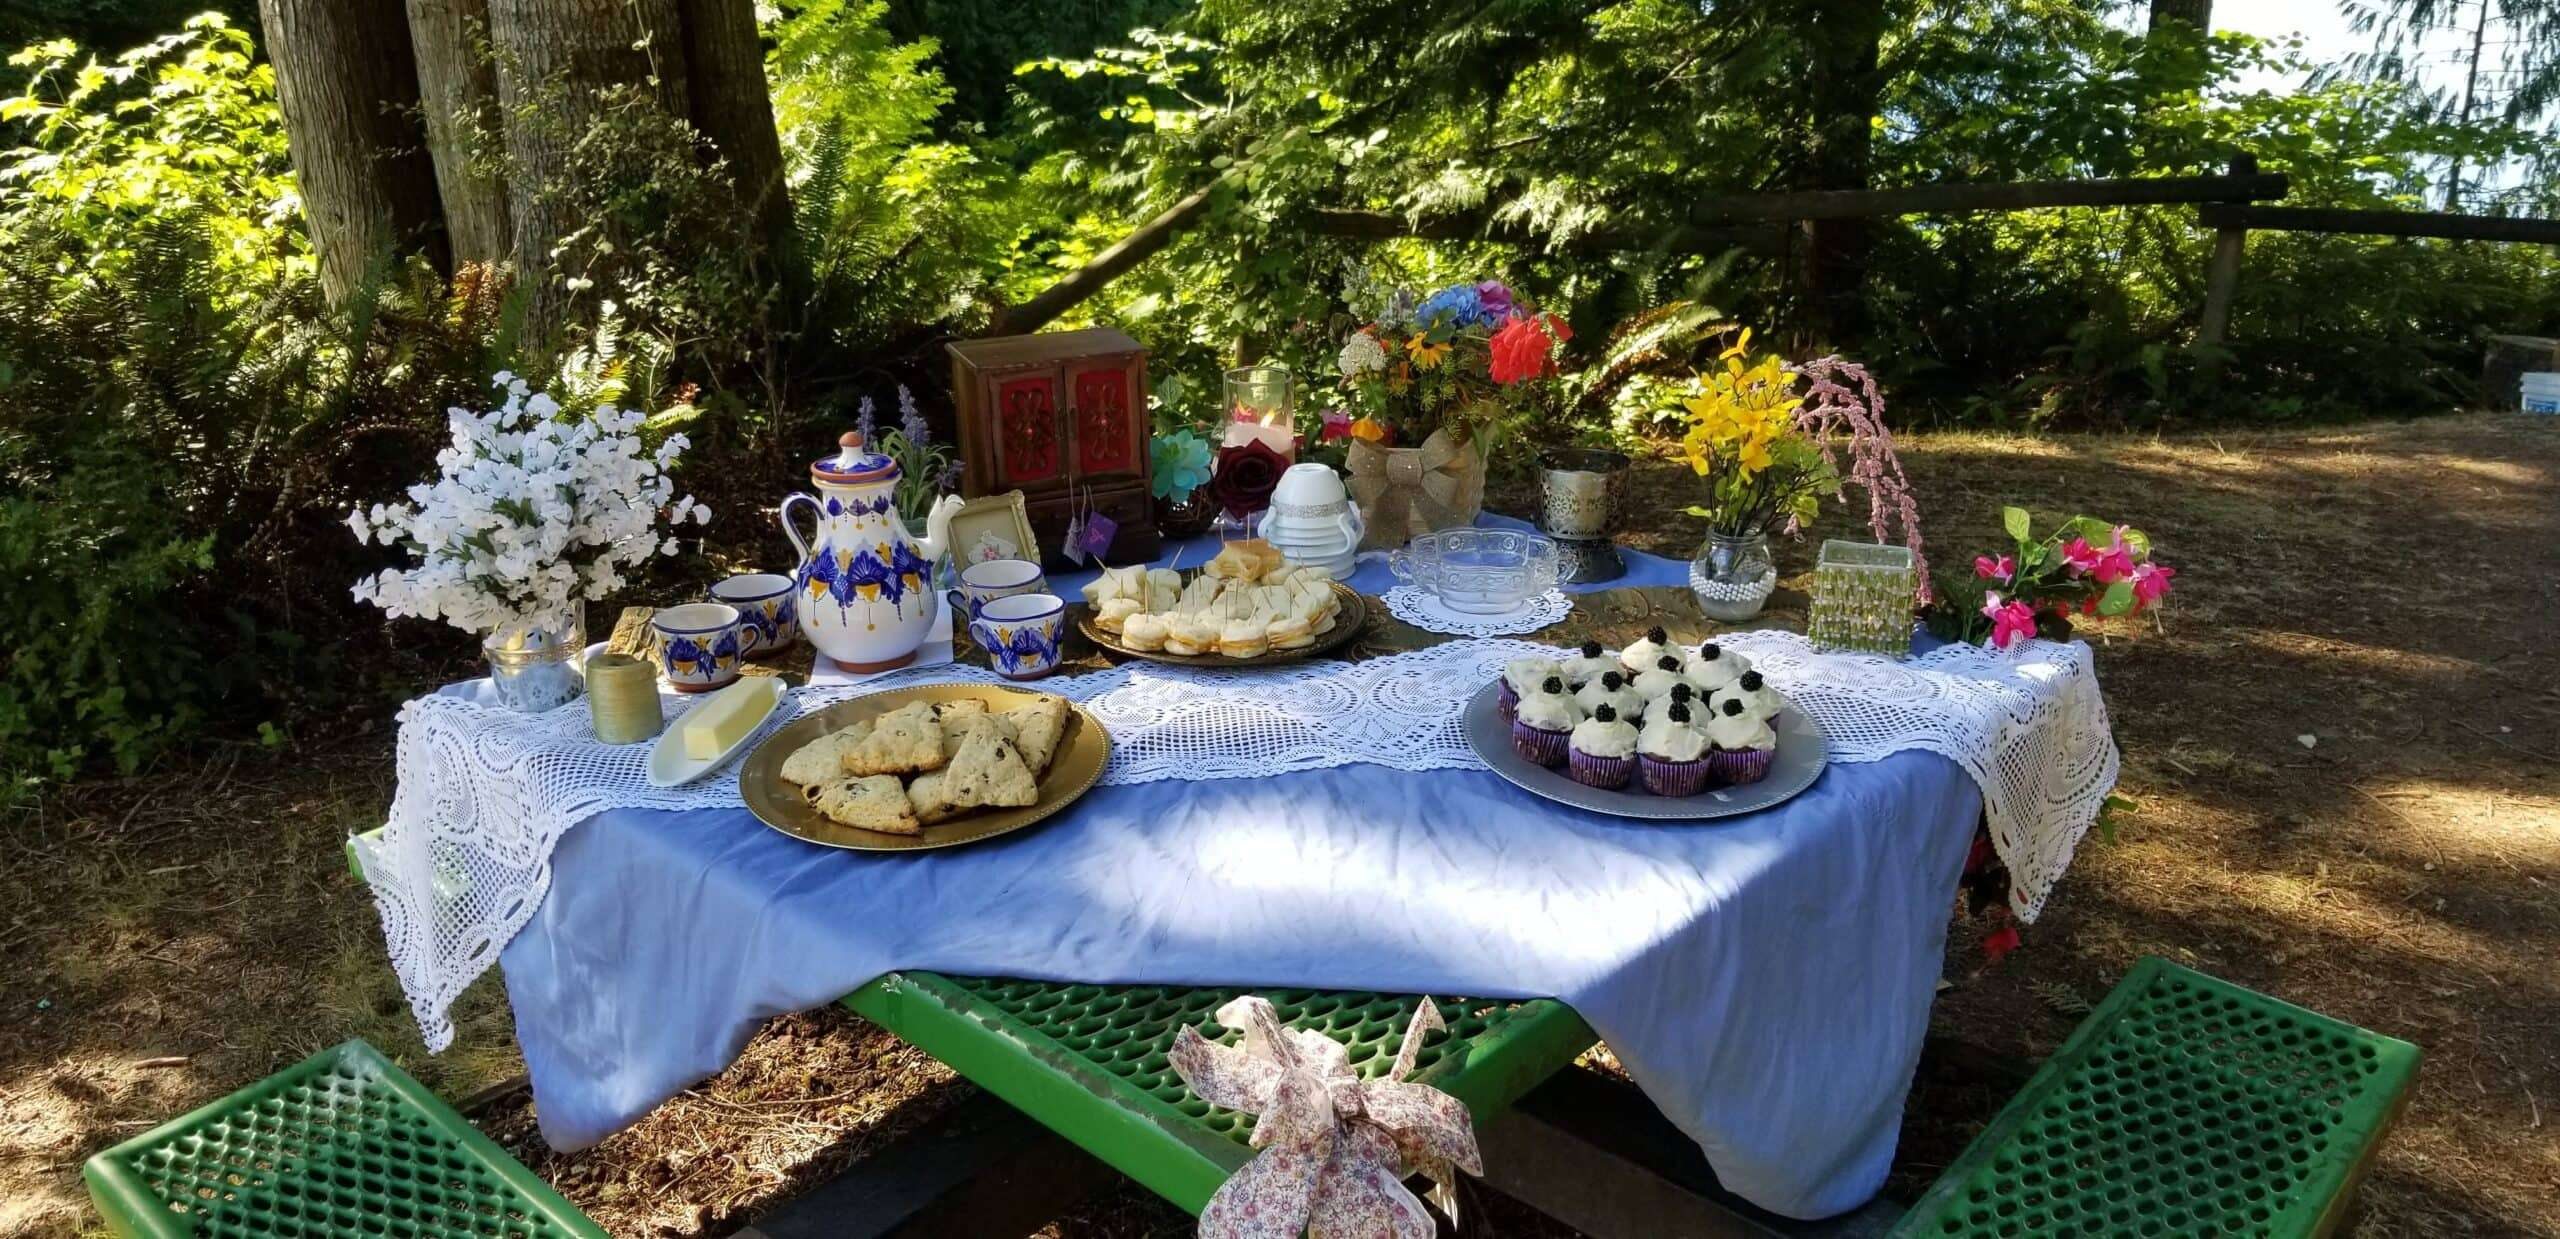 A picture of a table decorated and covered in goodies and flowers.